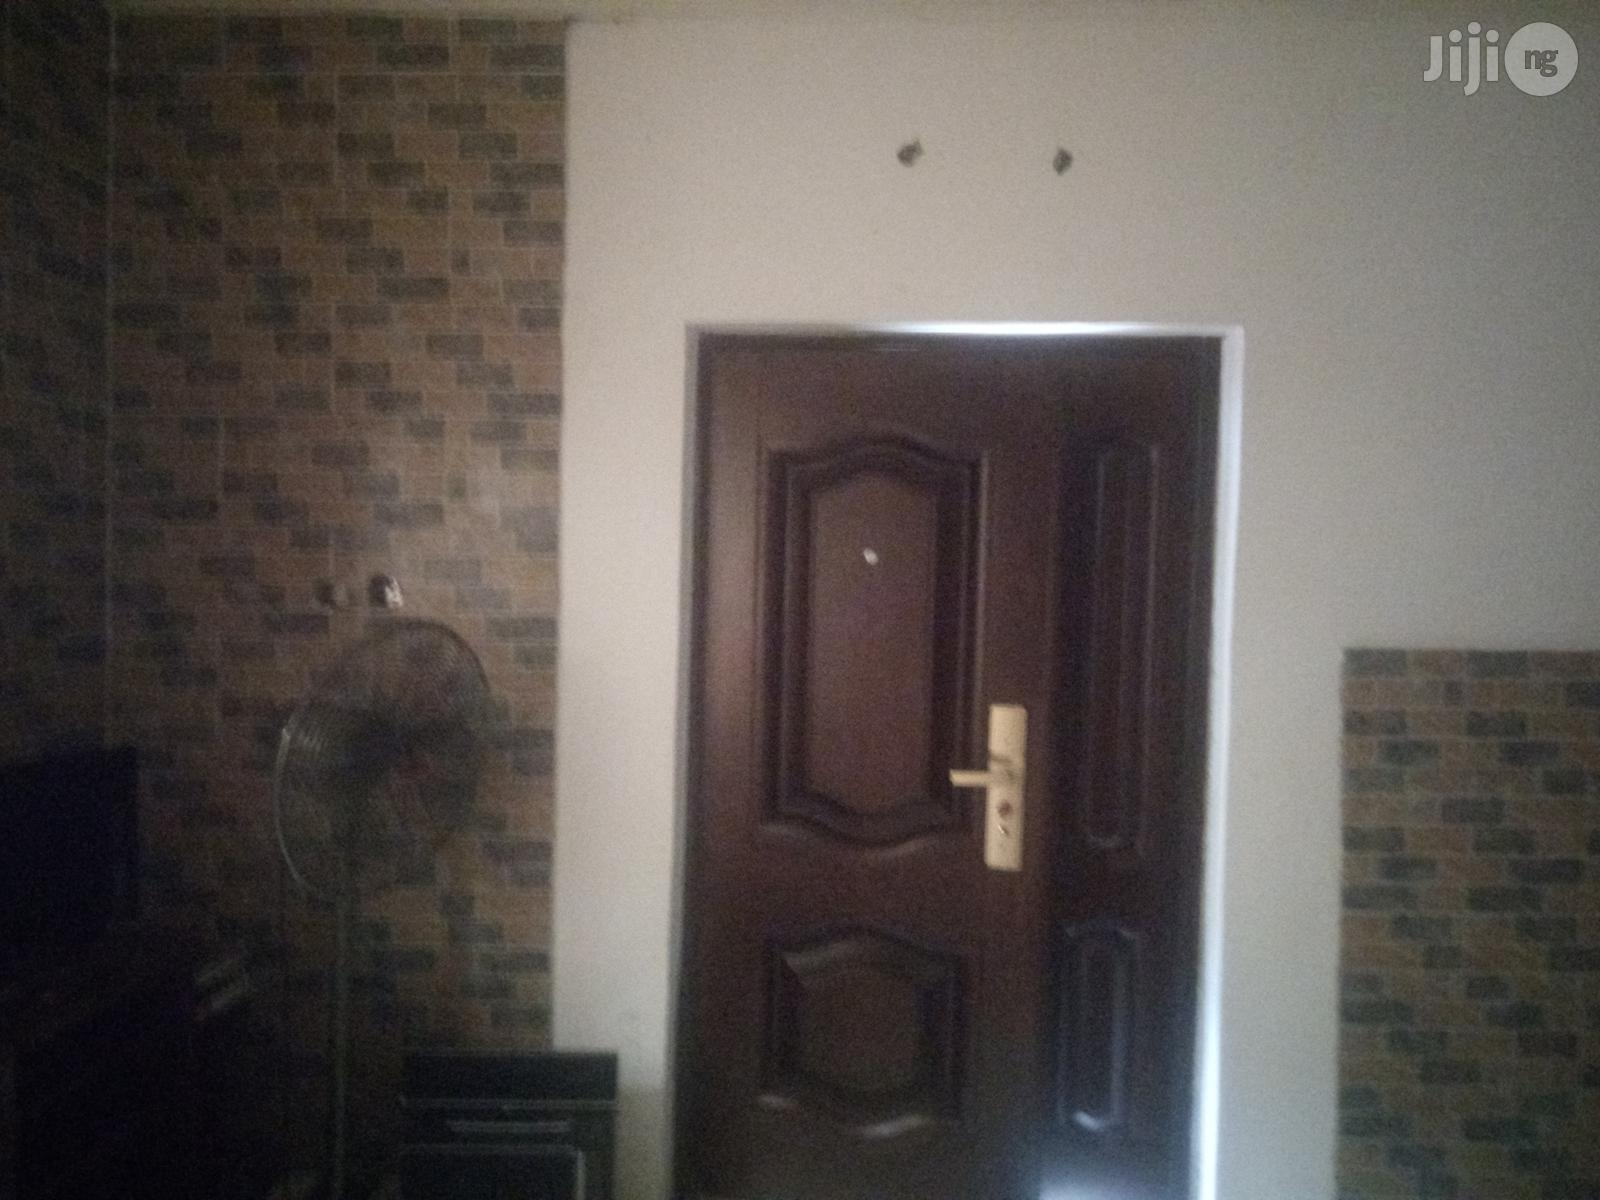 A Beautiful 3 Bedroom Flat Rupokwu, Port Harcourt For Sale | Houses & Apartments For Sale for sale in Obio-Akpor, Rivers State, Nigeria